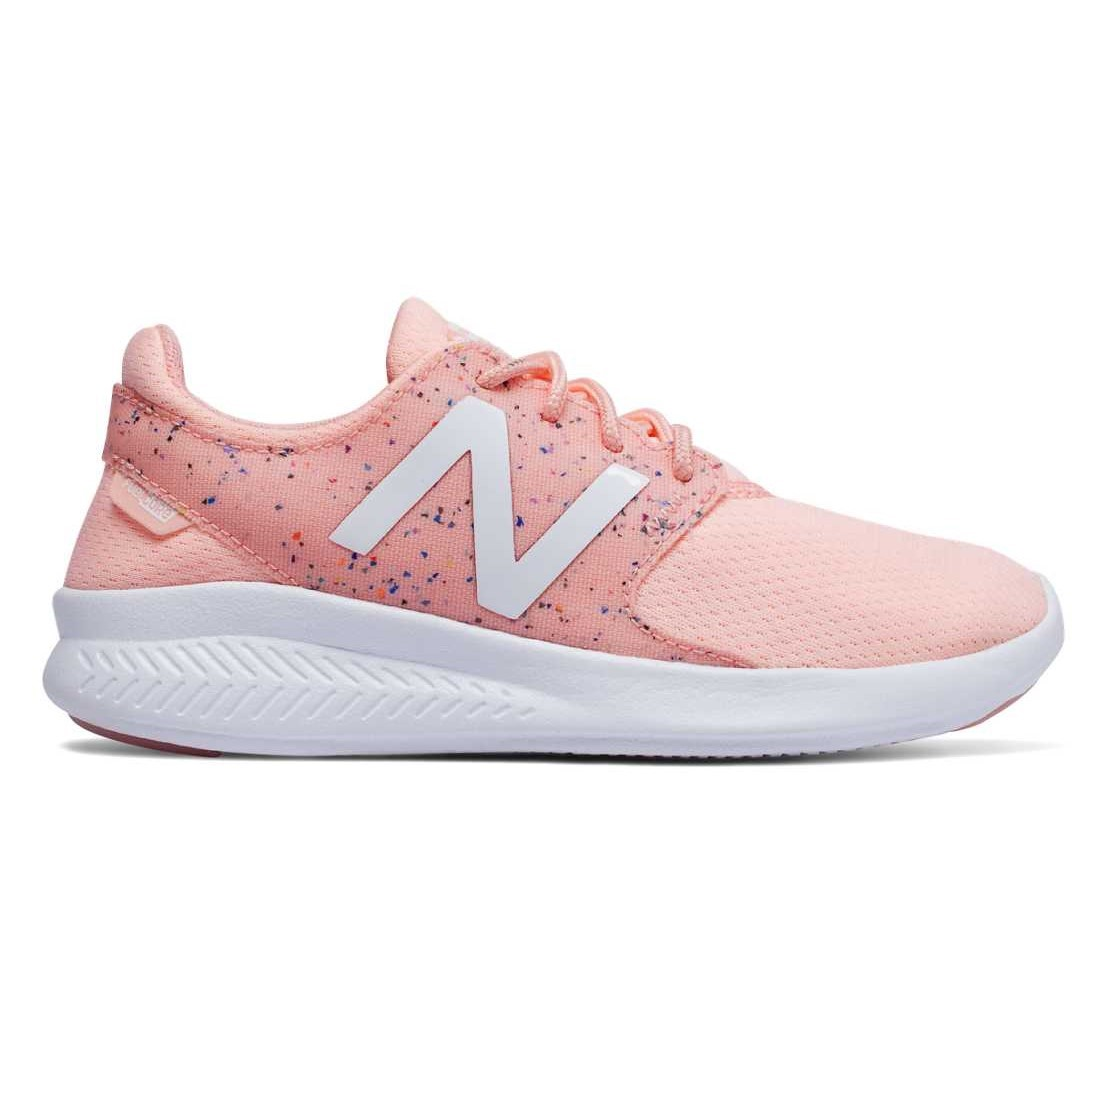 ddf891cd New Balance FuelCore Coast v3 - Kids Girls Running Shoes